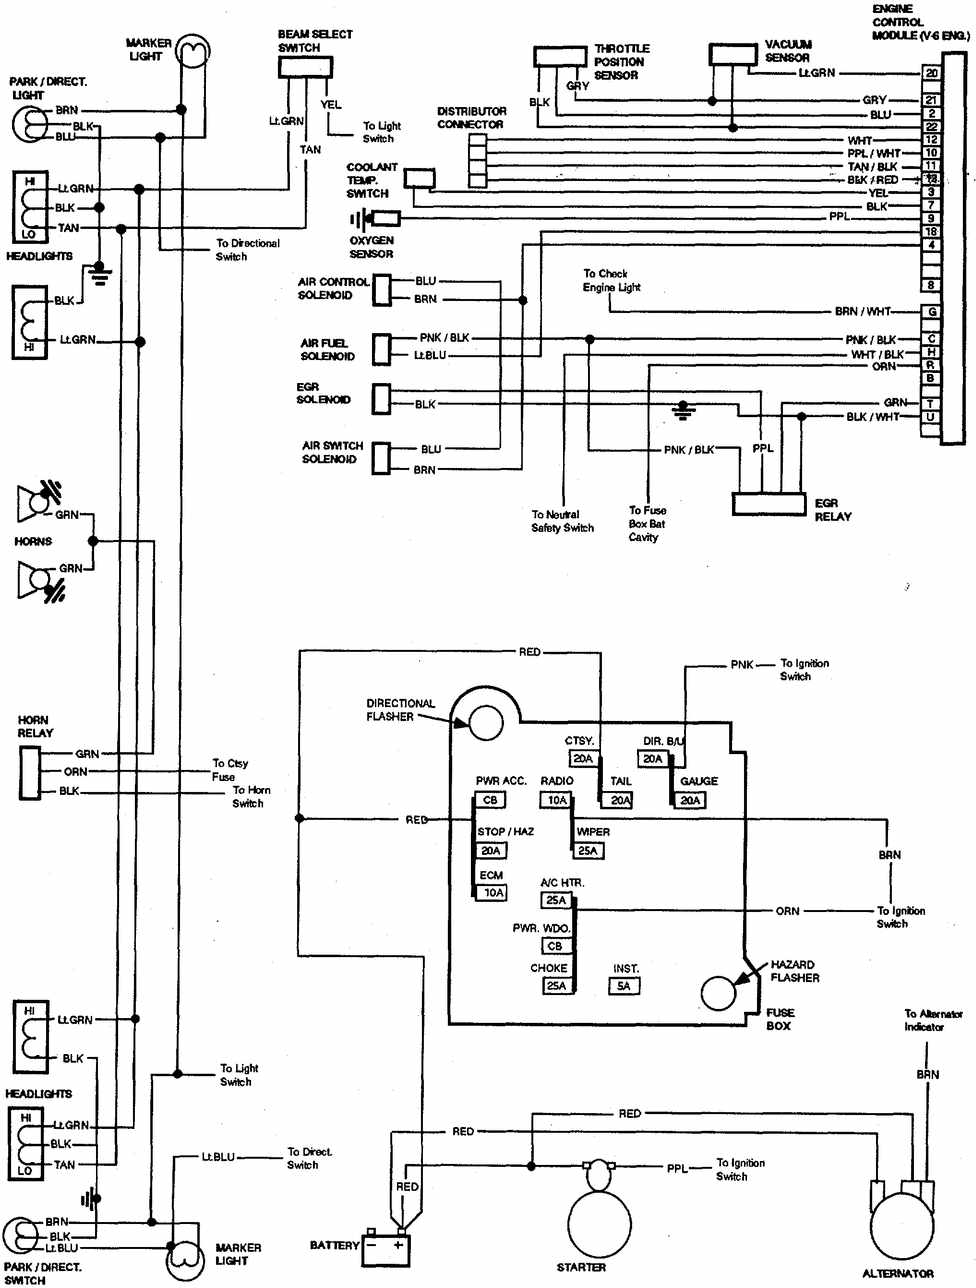 chevrolet v8 trucks 1981 1987 electrical wiring diagram 1986 k5 blazer fuse box diagram 1984 k5 [ 976 x 1288 Pixel ]